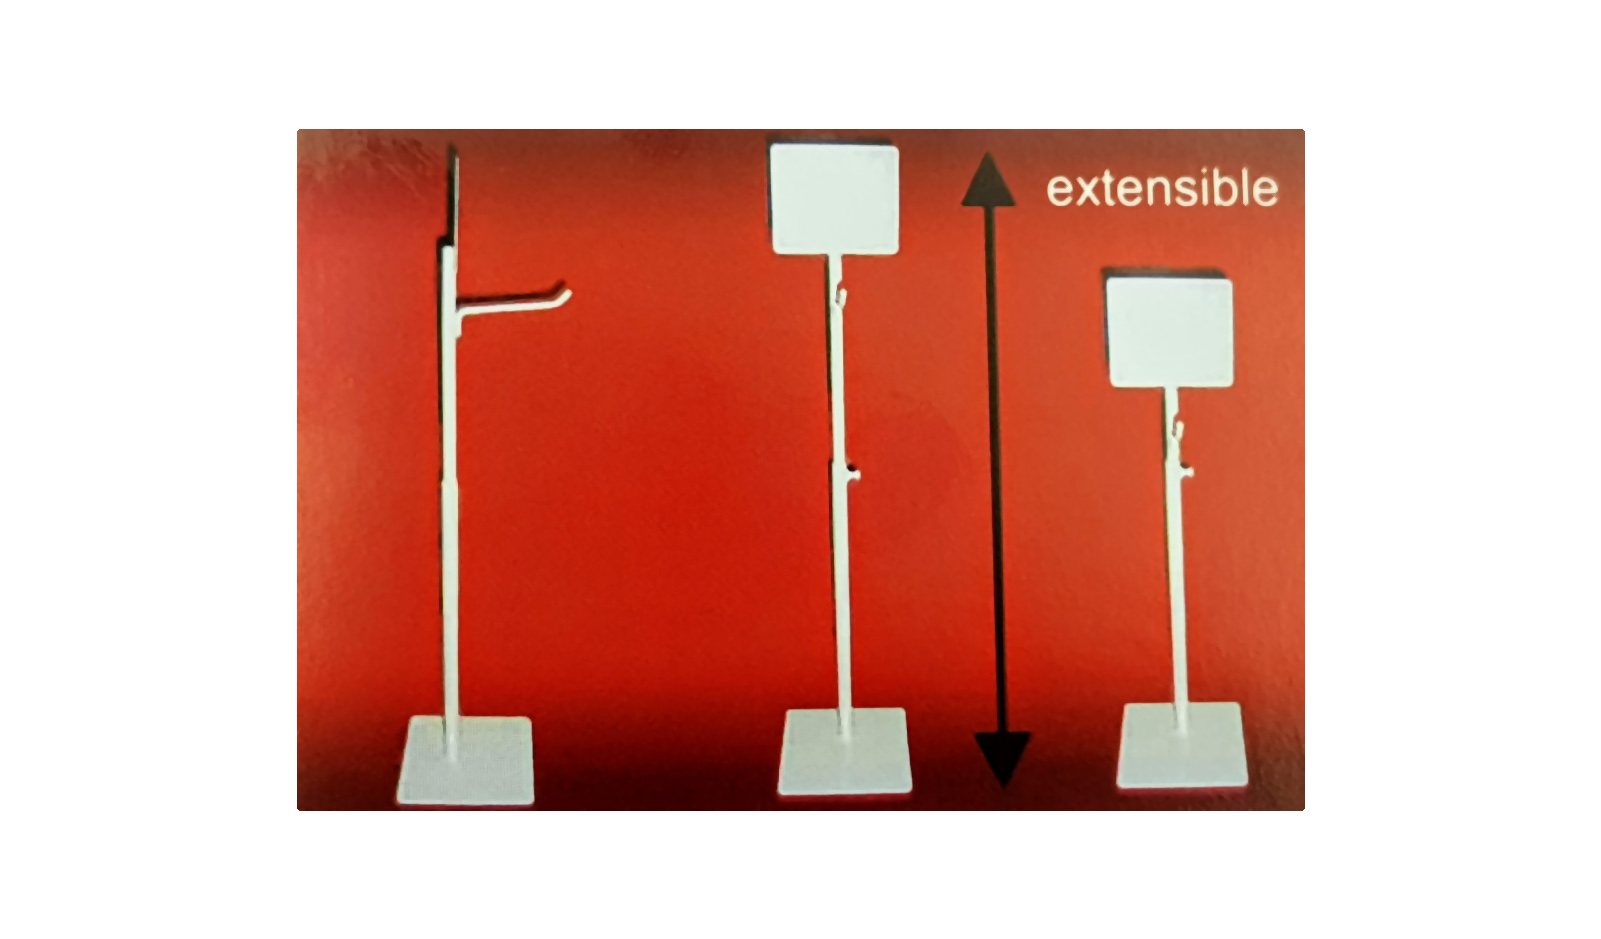 formes_expositores